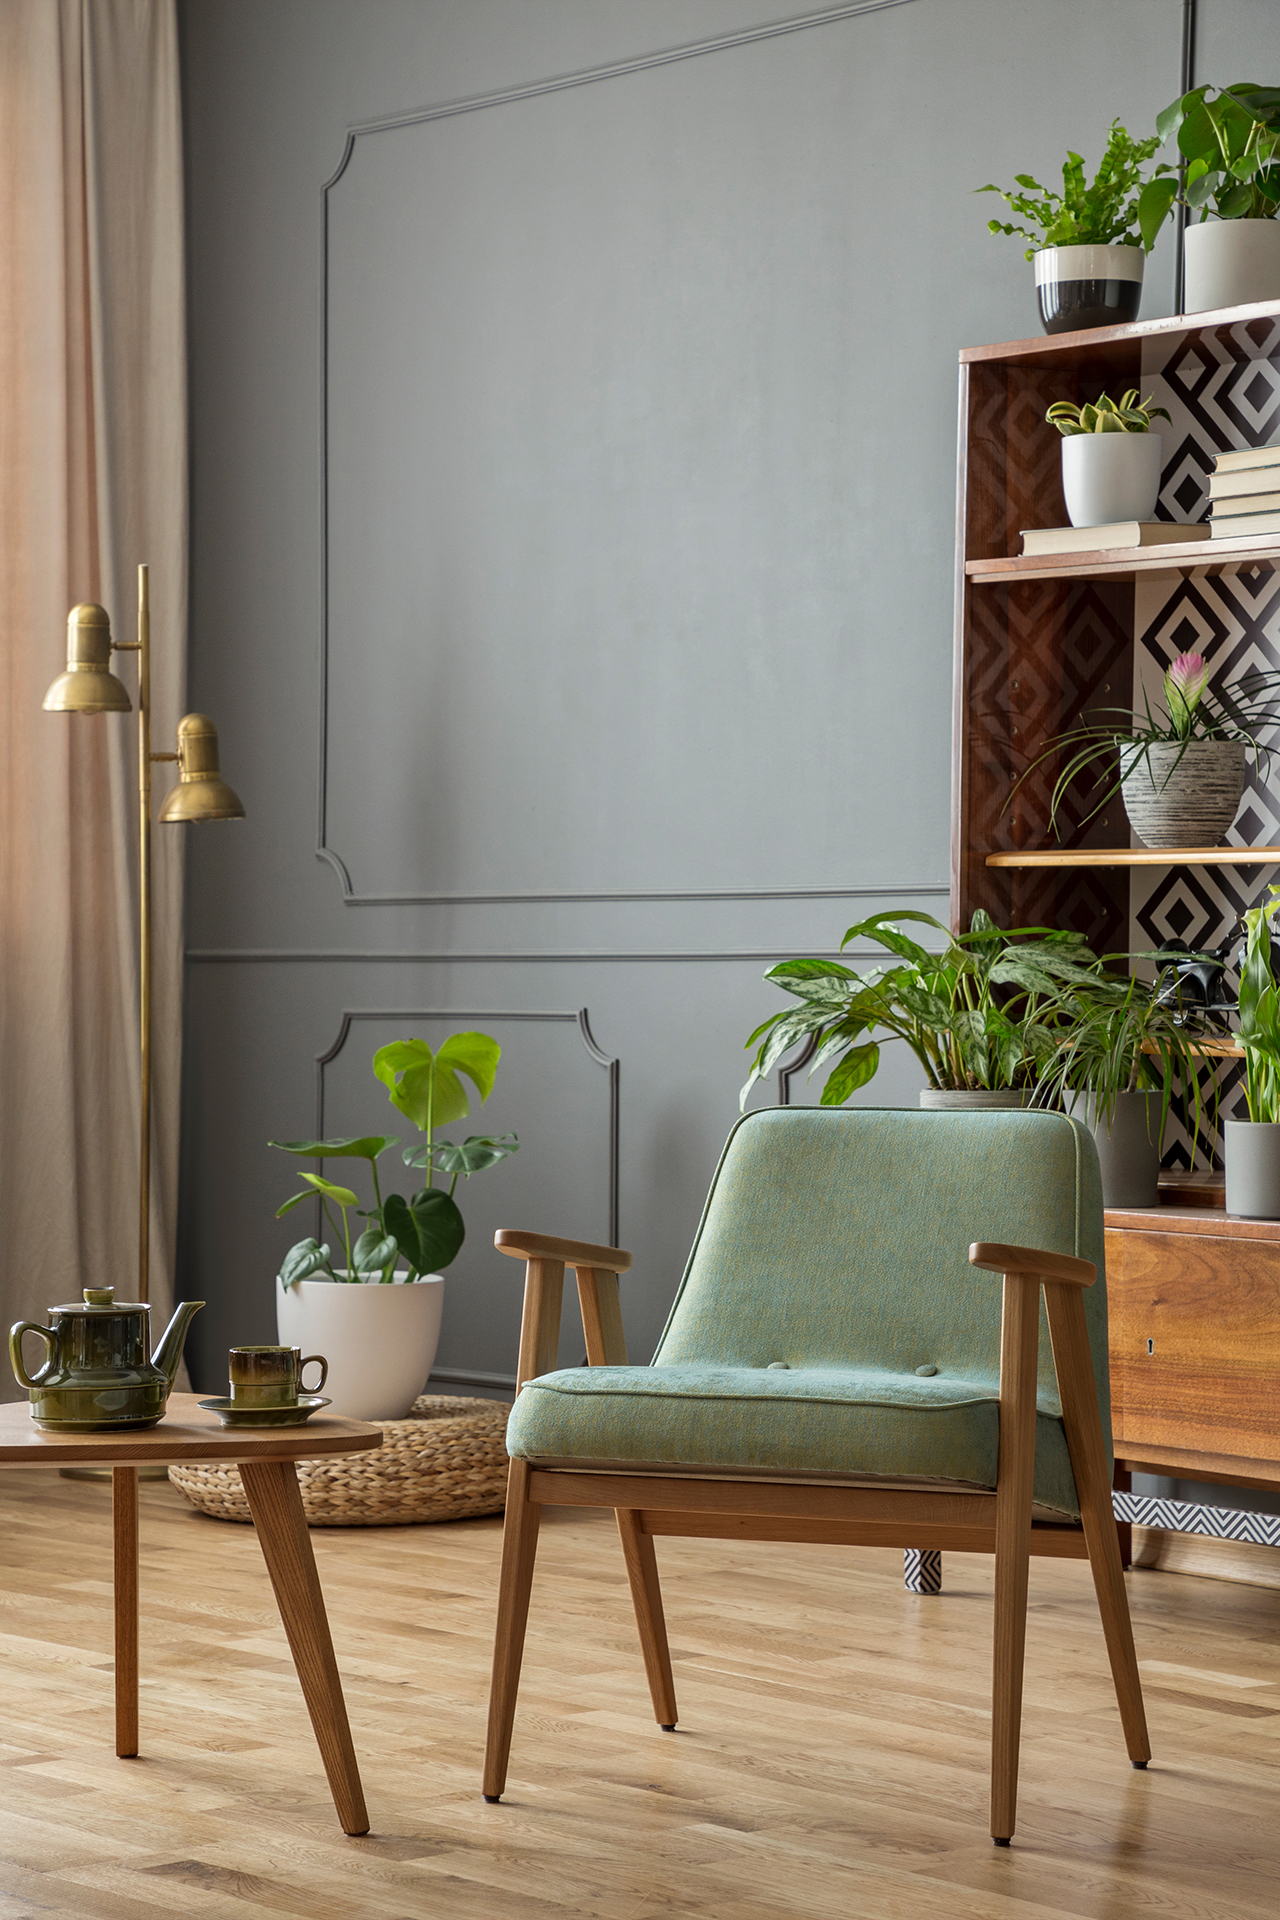 green-armchair-next-to-wooden-table-in-grey-JX2UV8S.jpg